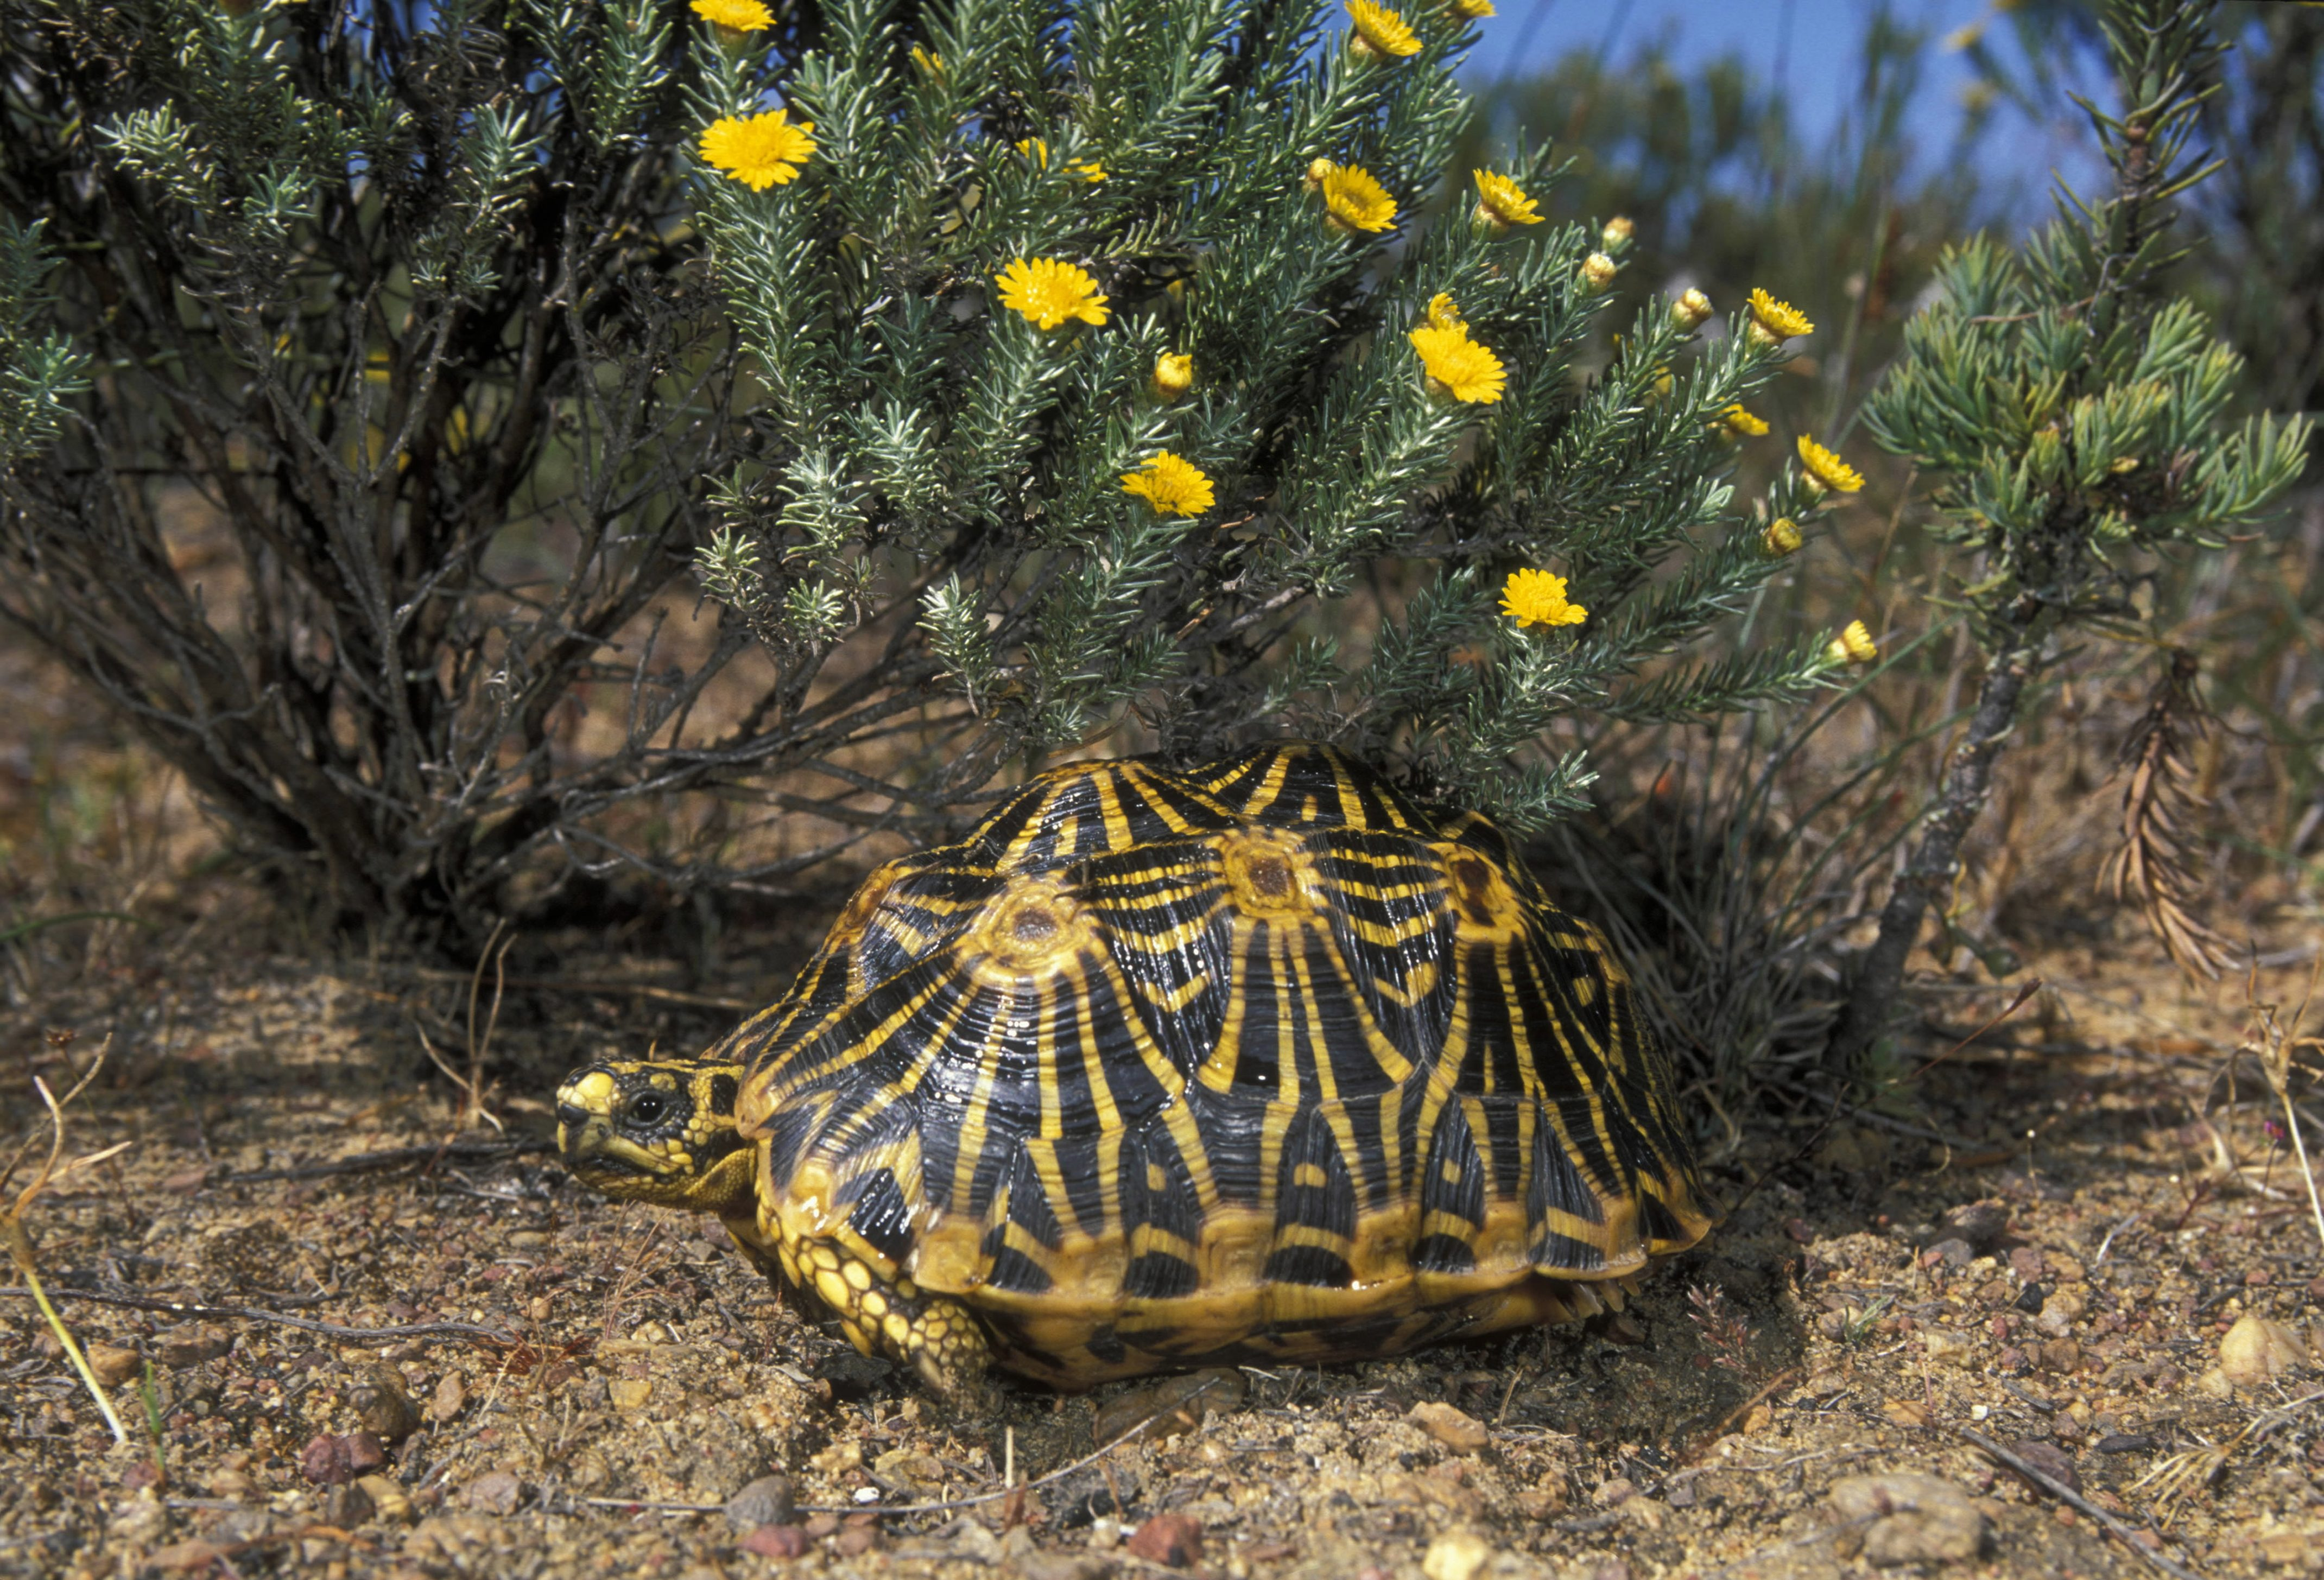 ENDANGERED AND FYNBOS ENDEMIC GEOMETRIC TORTOISE, PSAMMOBATES GEOMETRICUS, SOUTH AFRICA RAREST TORTOISE IN AFRICA